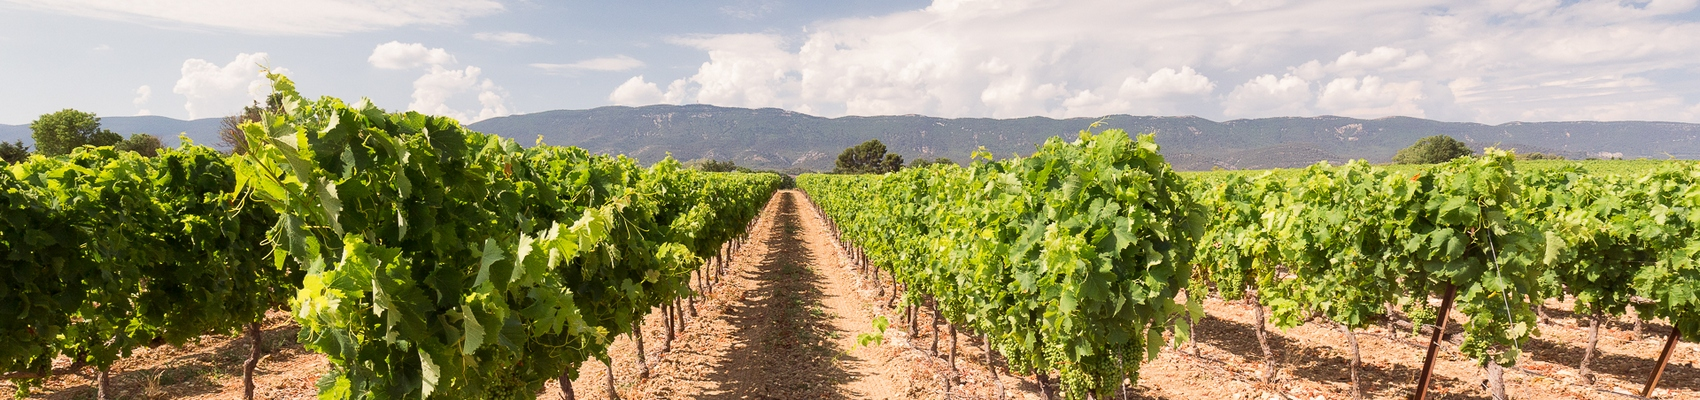 Ventoux Vineyards